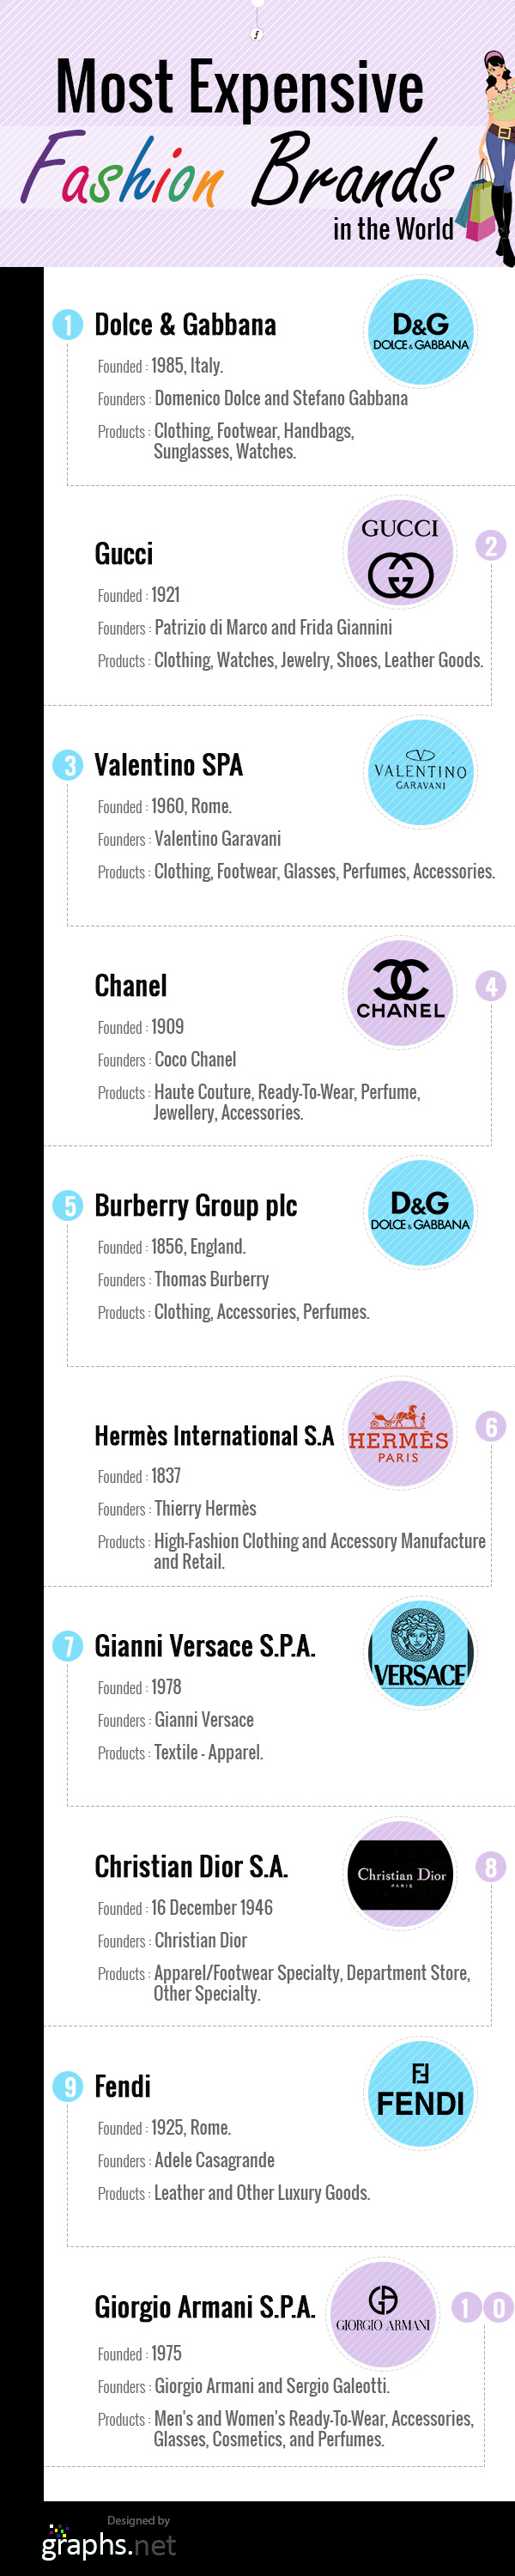 Most Expensive Fashion Brands in the World #infographic